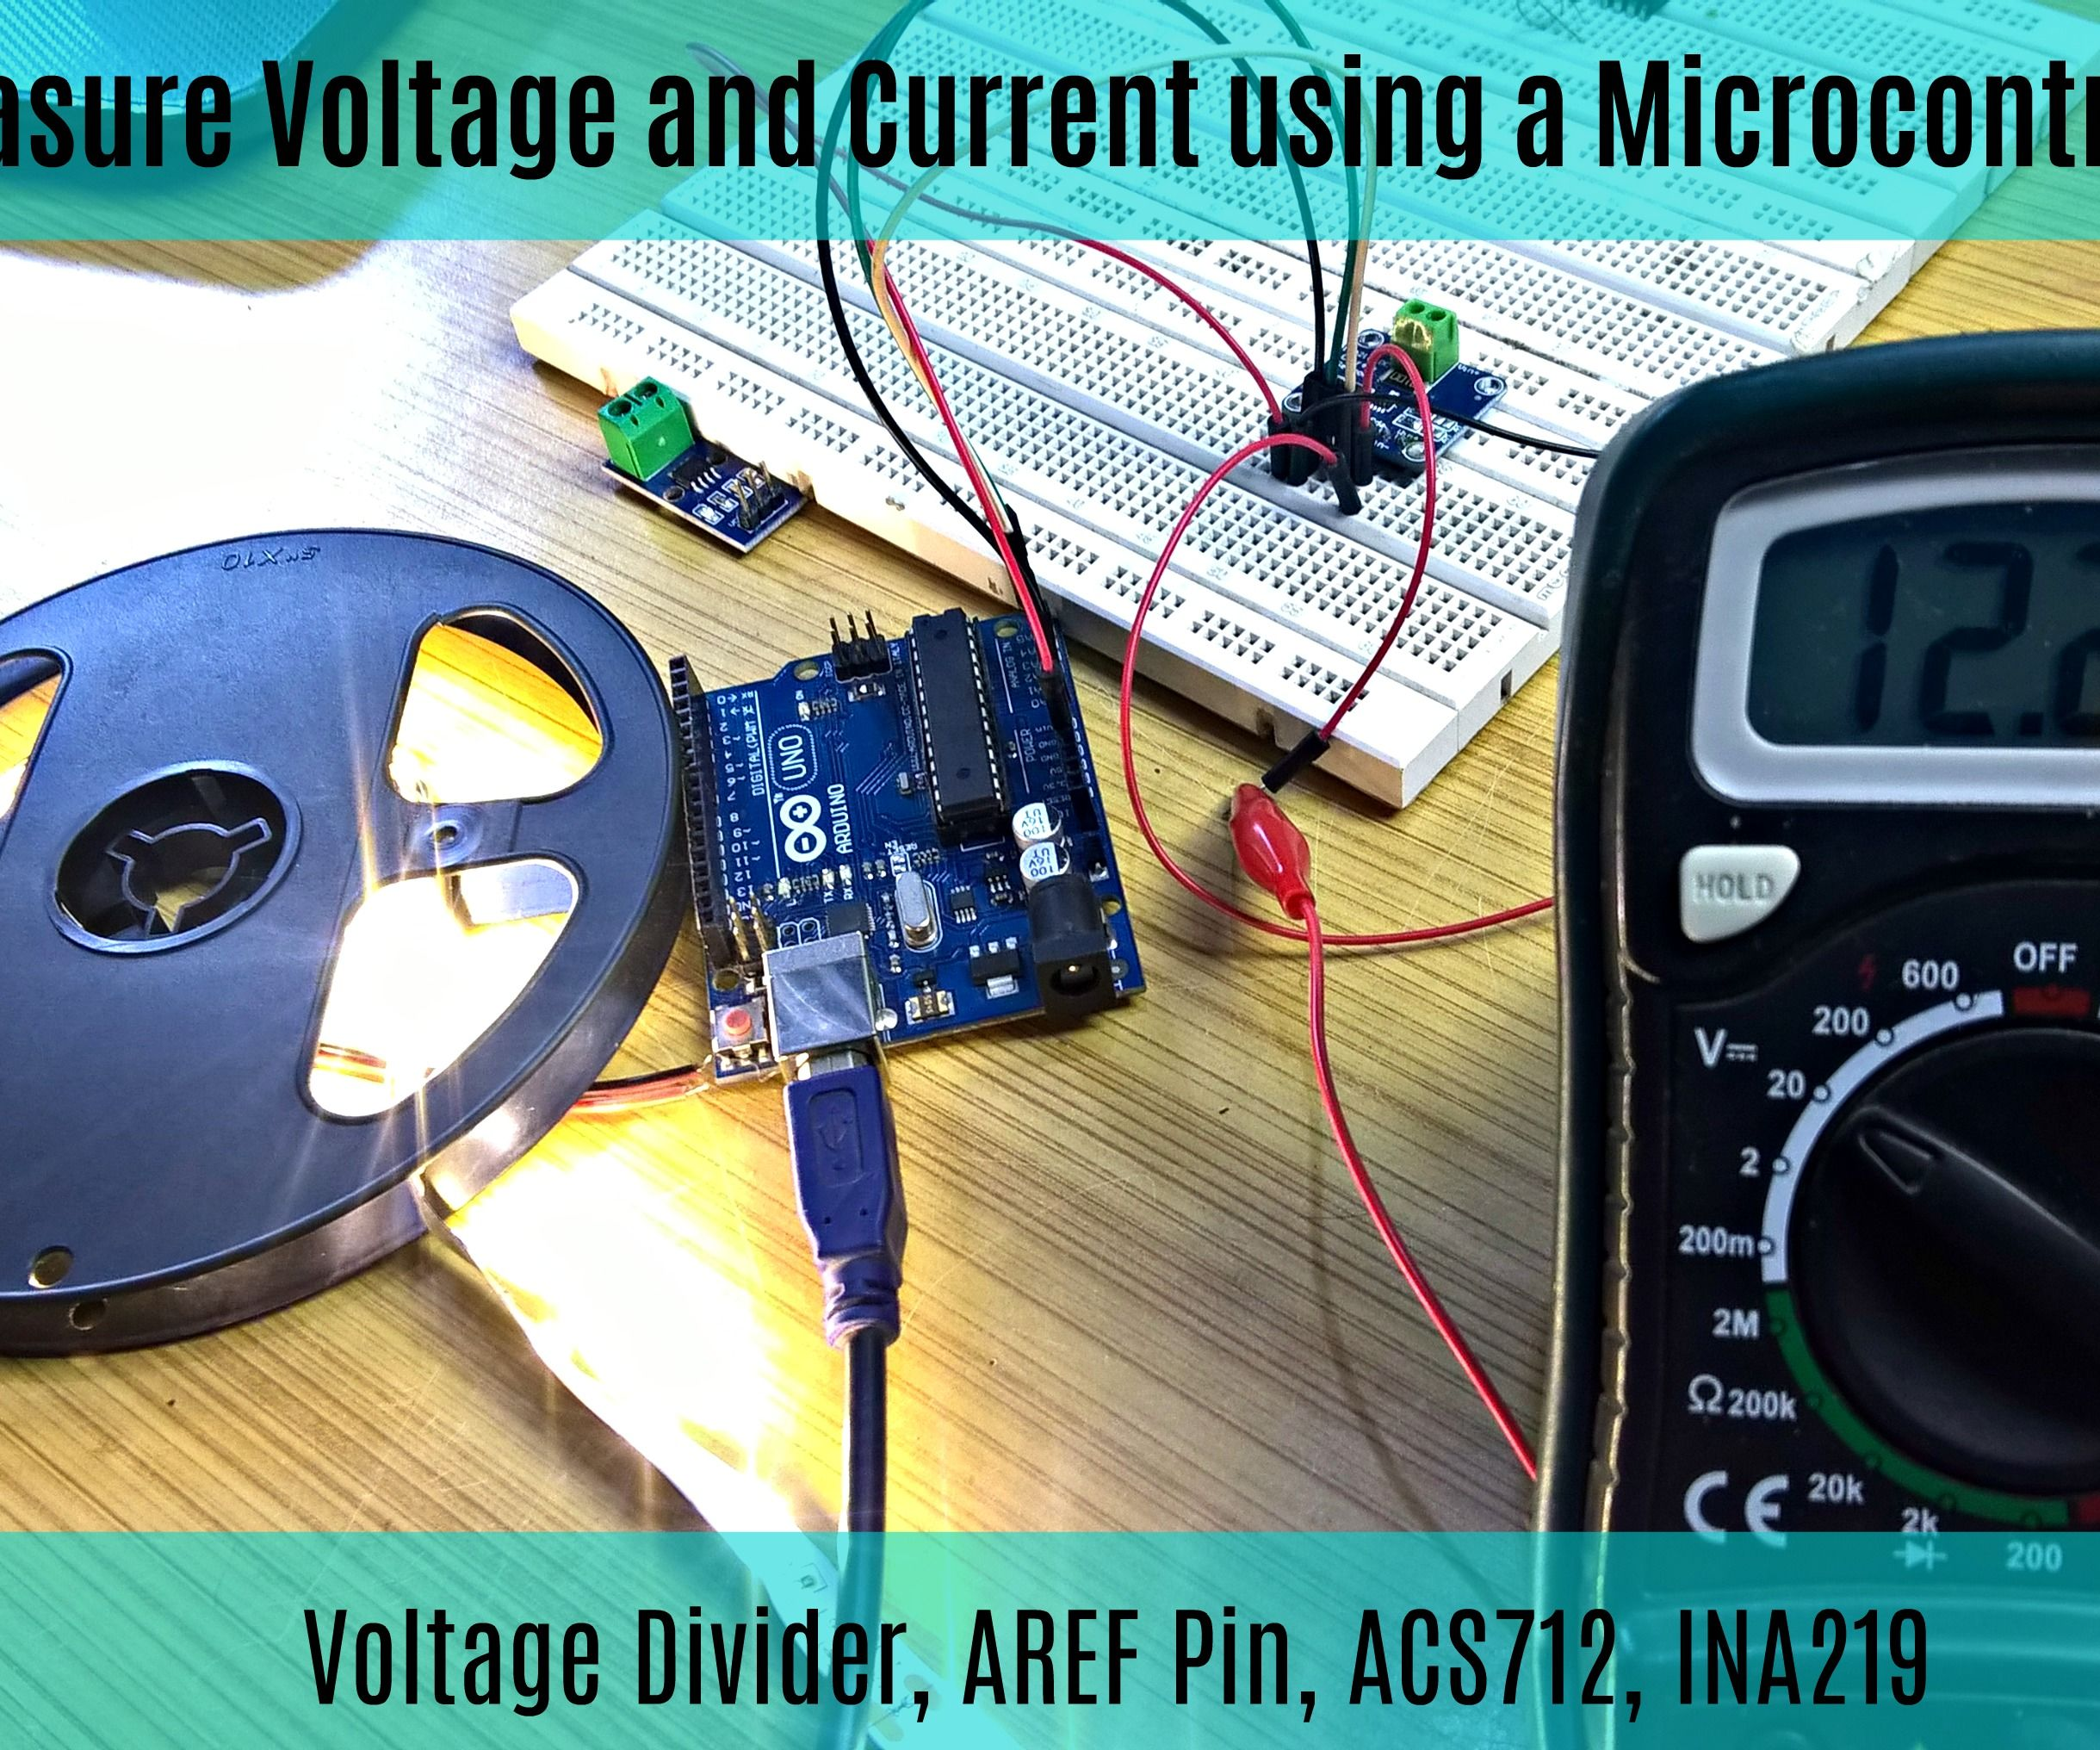 Measure Current and Voltage Using a Microcontroller    Voltage Divider    ACS712    INA219